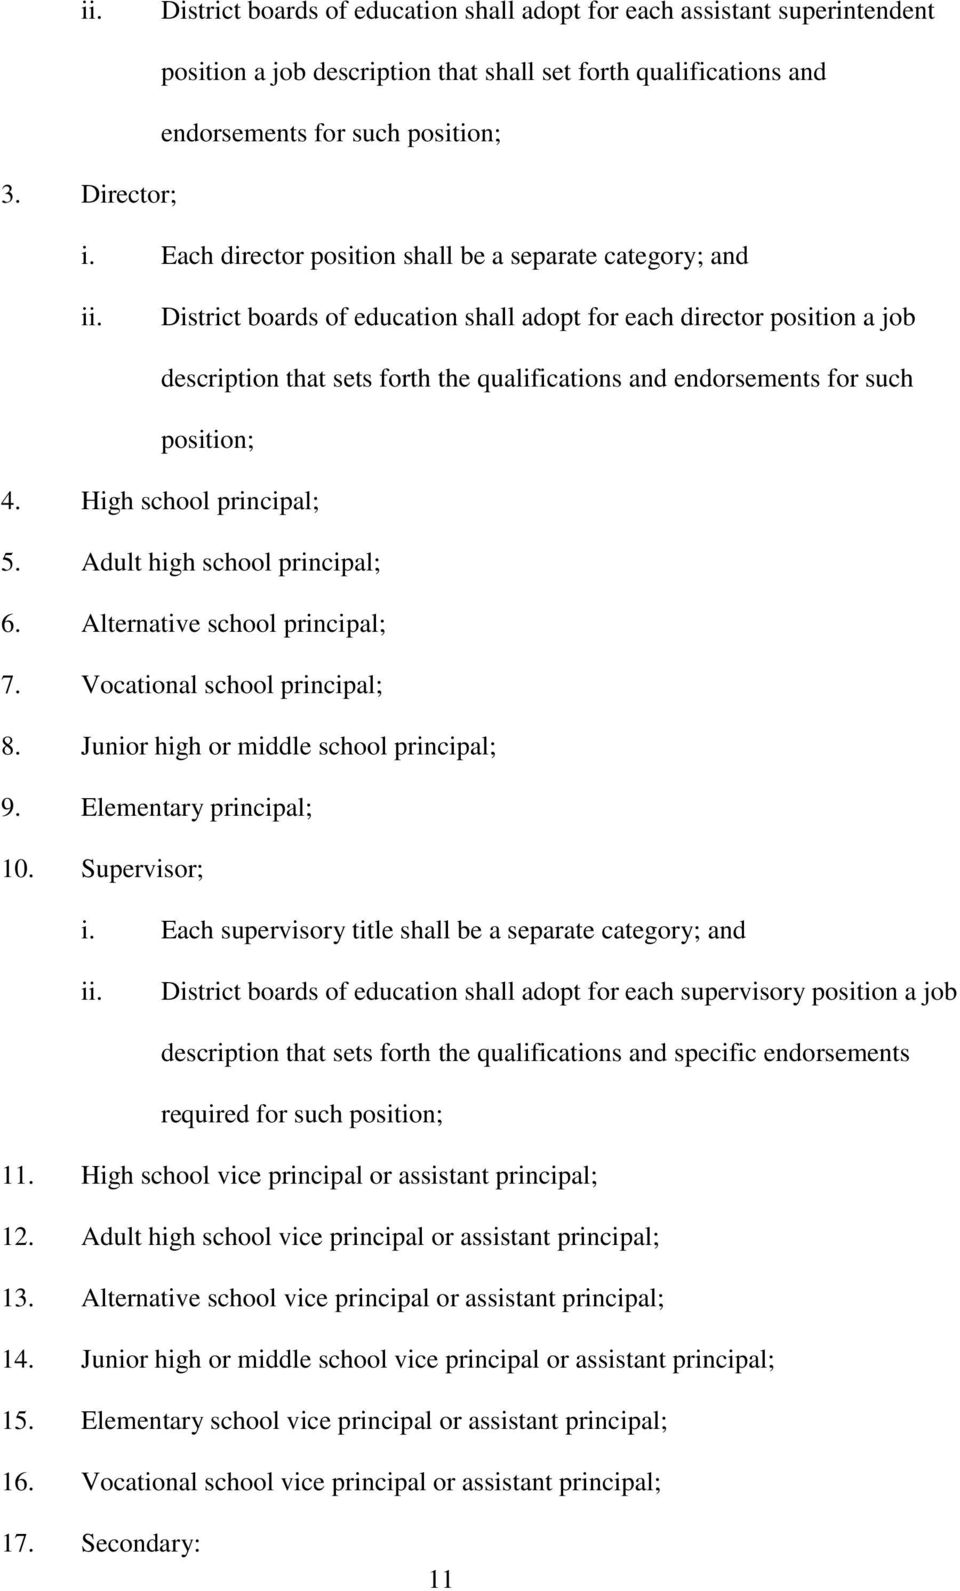 District boards of education shall adopt for each director position a job description that sets forth the qualifications and endorsements for such position; 4. High school principal; 5.